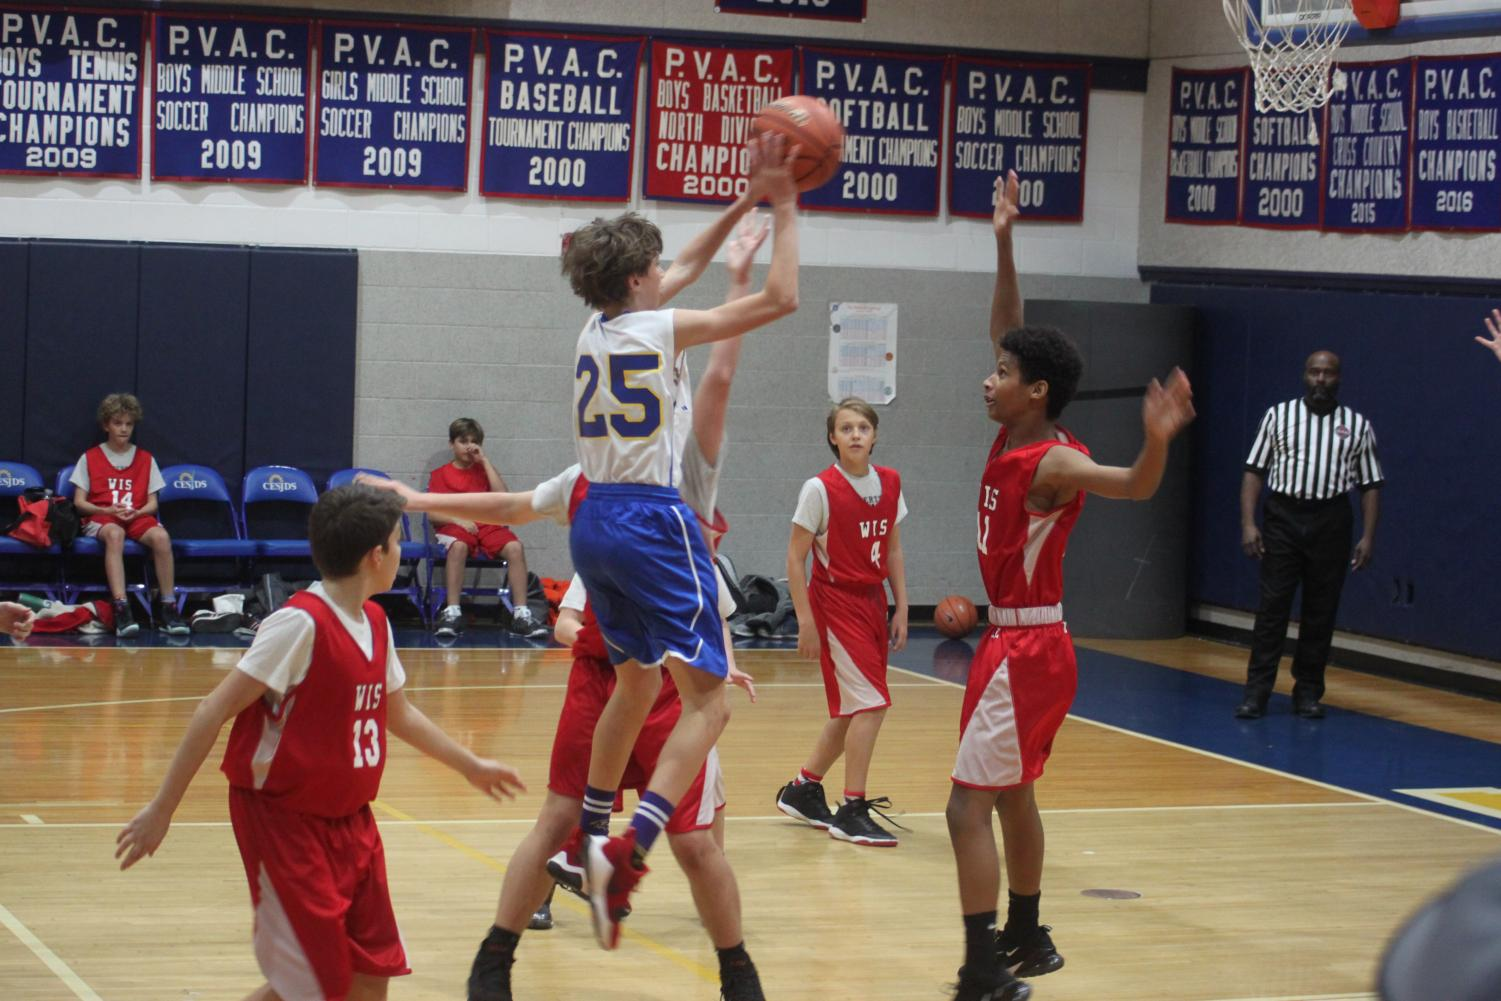 CESJDS eighth-grader and team co-captain David Fritz faces off against two WIS defenders making a jump shot.